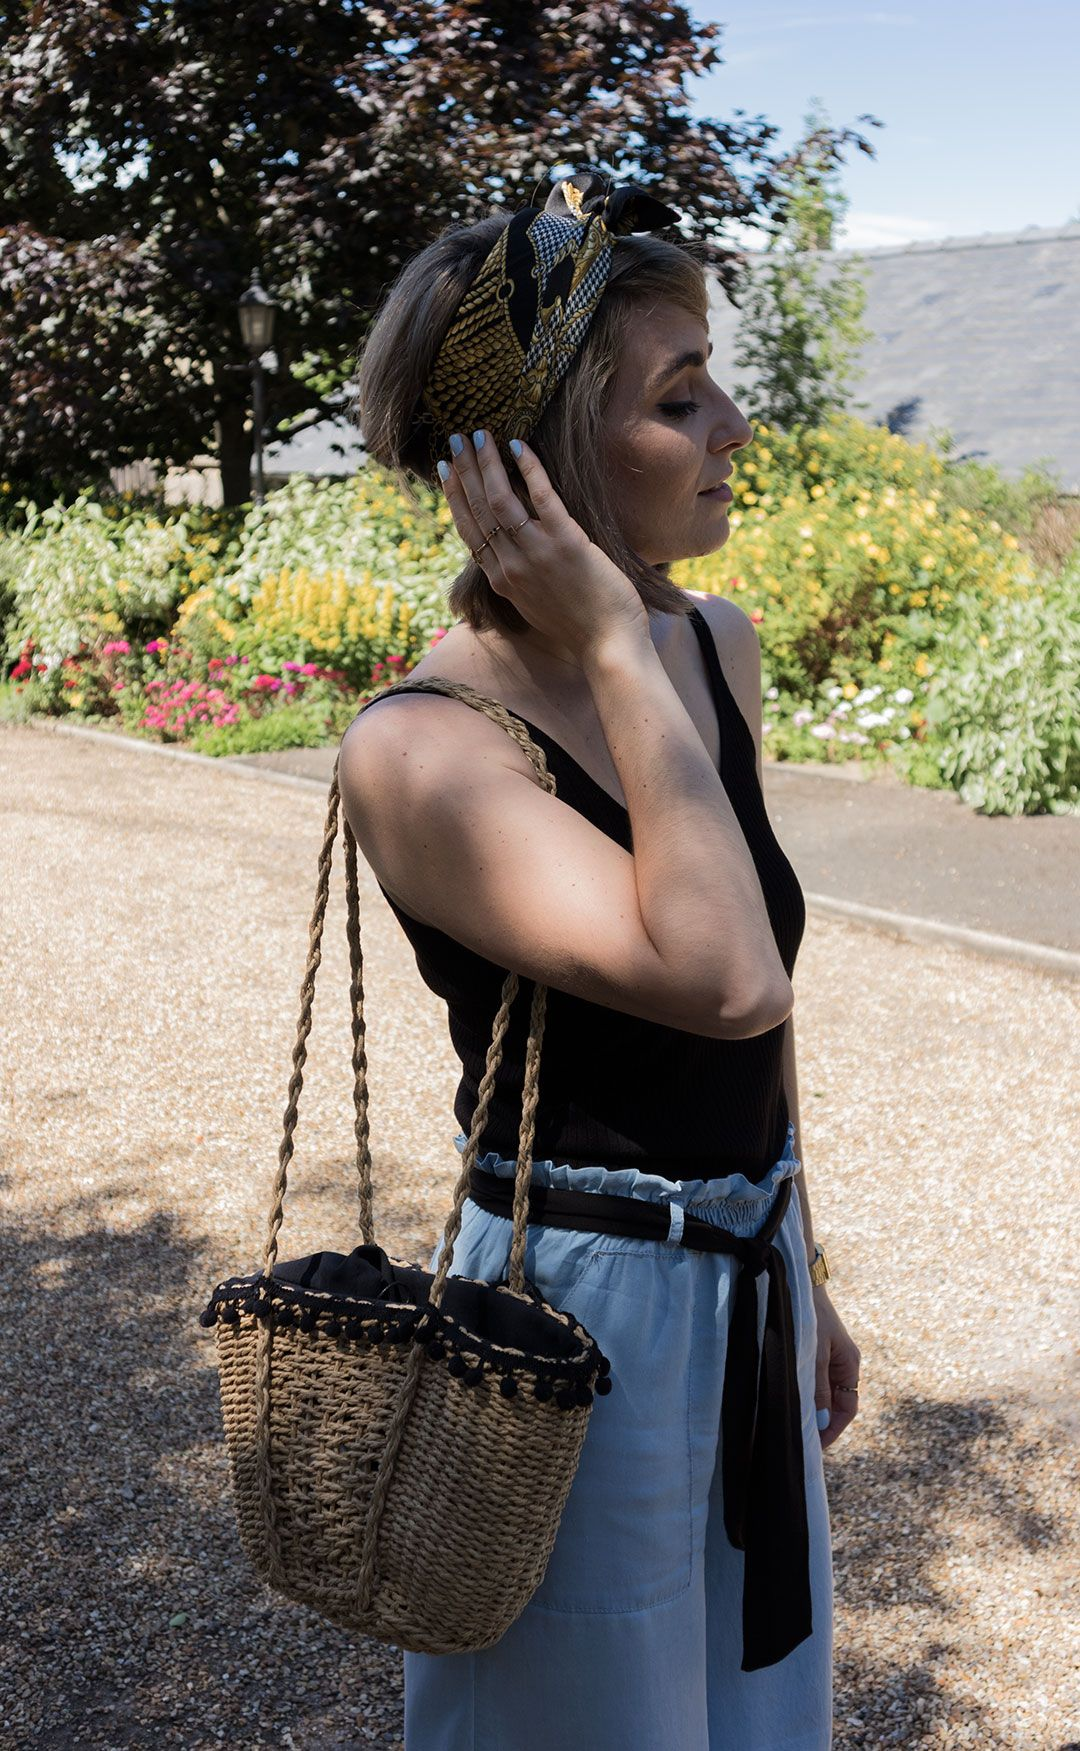 Baby Blue culottes | Black top & chunky sandals | Headscarf | Raffia Bag | Summer Bag | Light Chambray Culottes | Cambridge Fashion | Fen Ditton | She talks Glam | How to style culottes | How to wear culottes | Wide leg pants | Chic summer outfit | Summer outfit inspiration | 2017 it bag | ZARA pom-pom bag | Headband | Culottes are a girl's best friend (in summer)